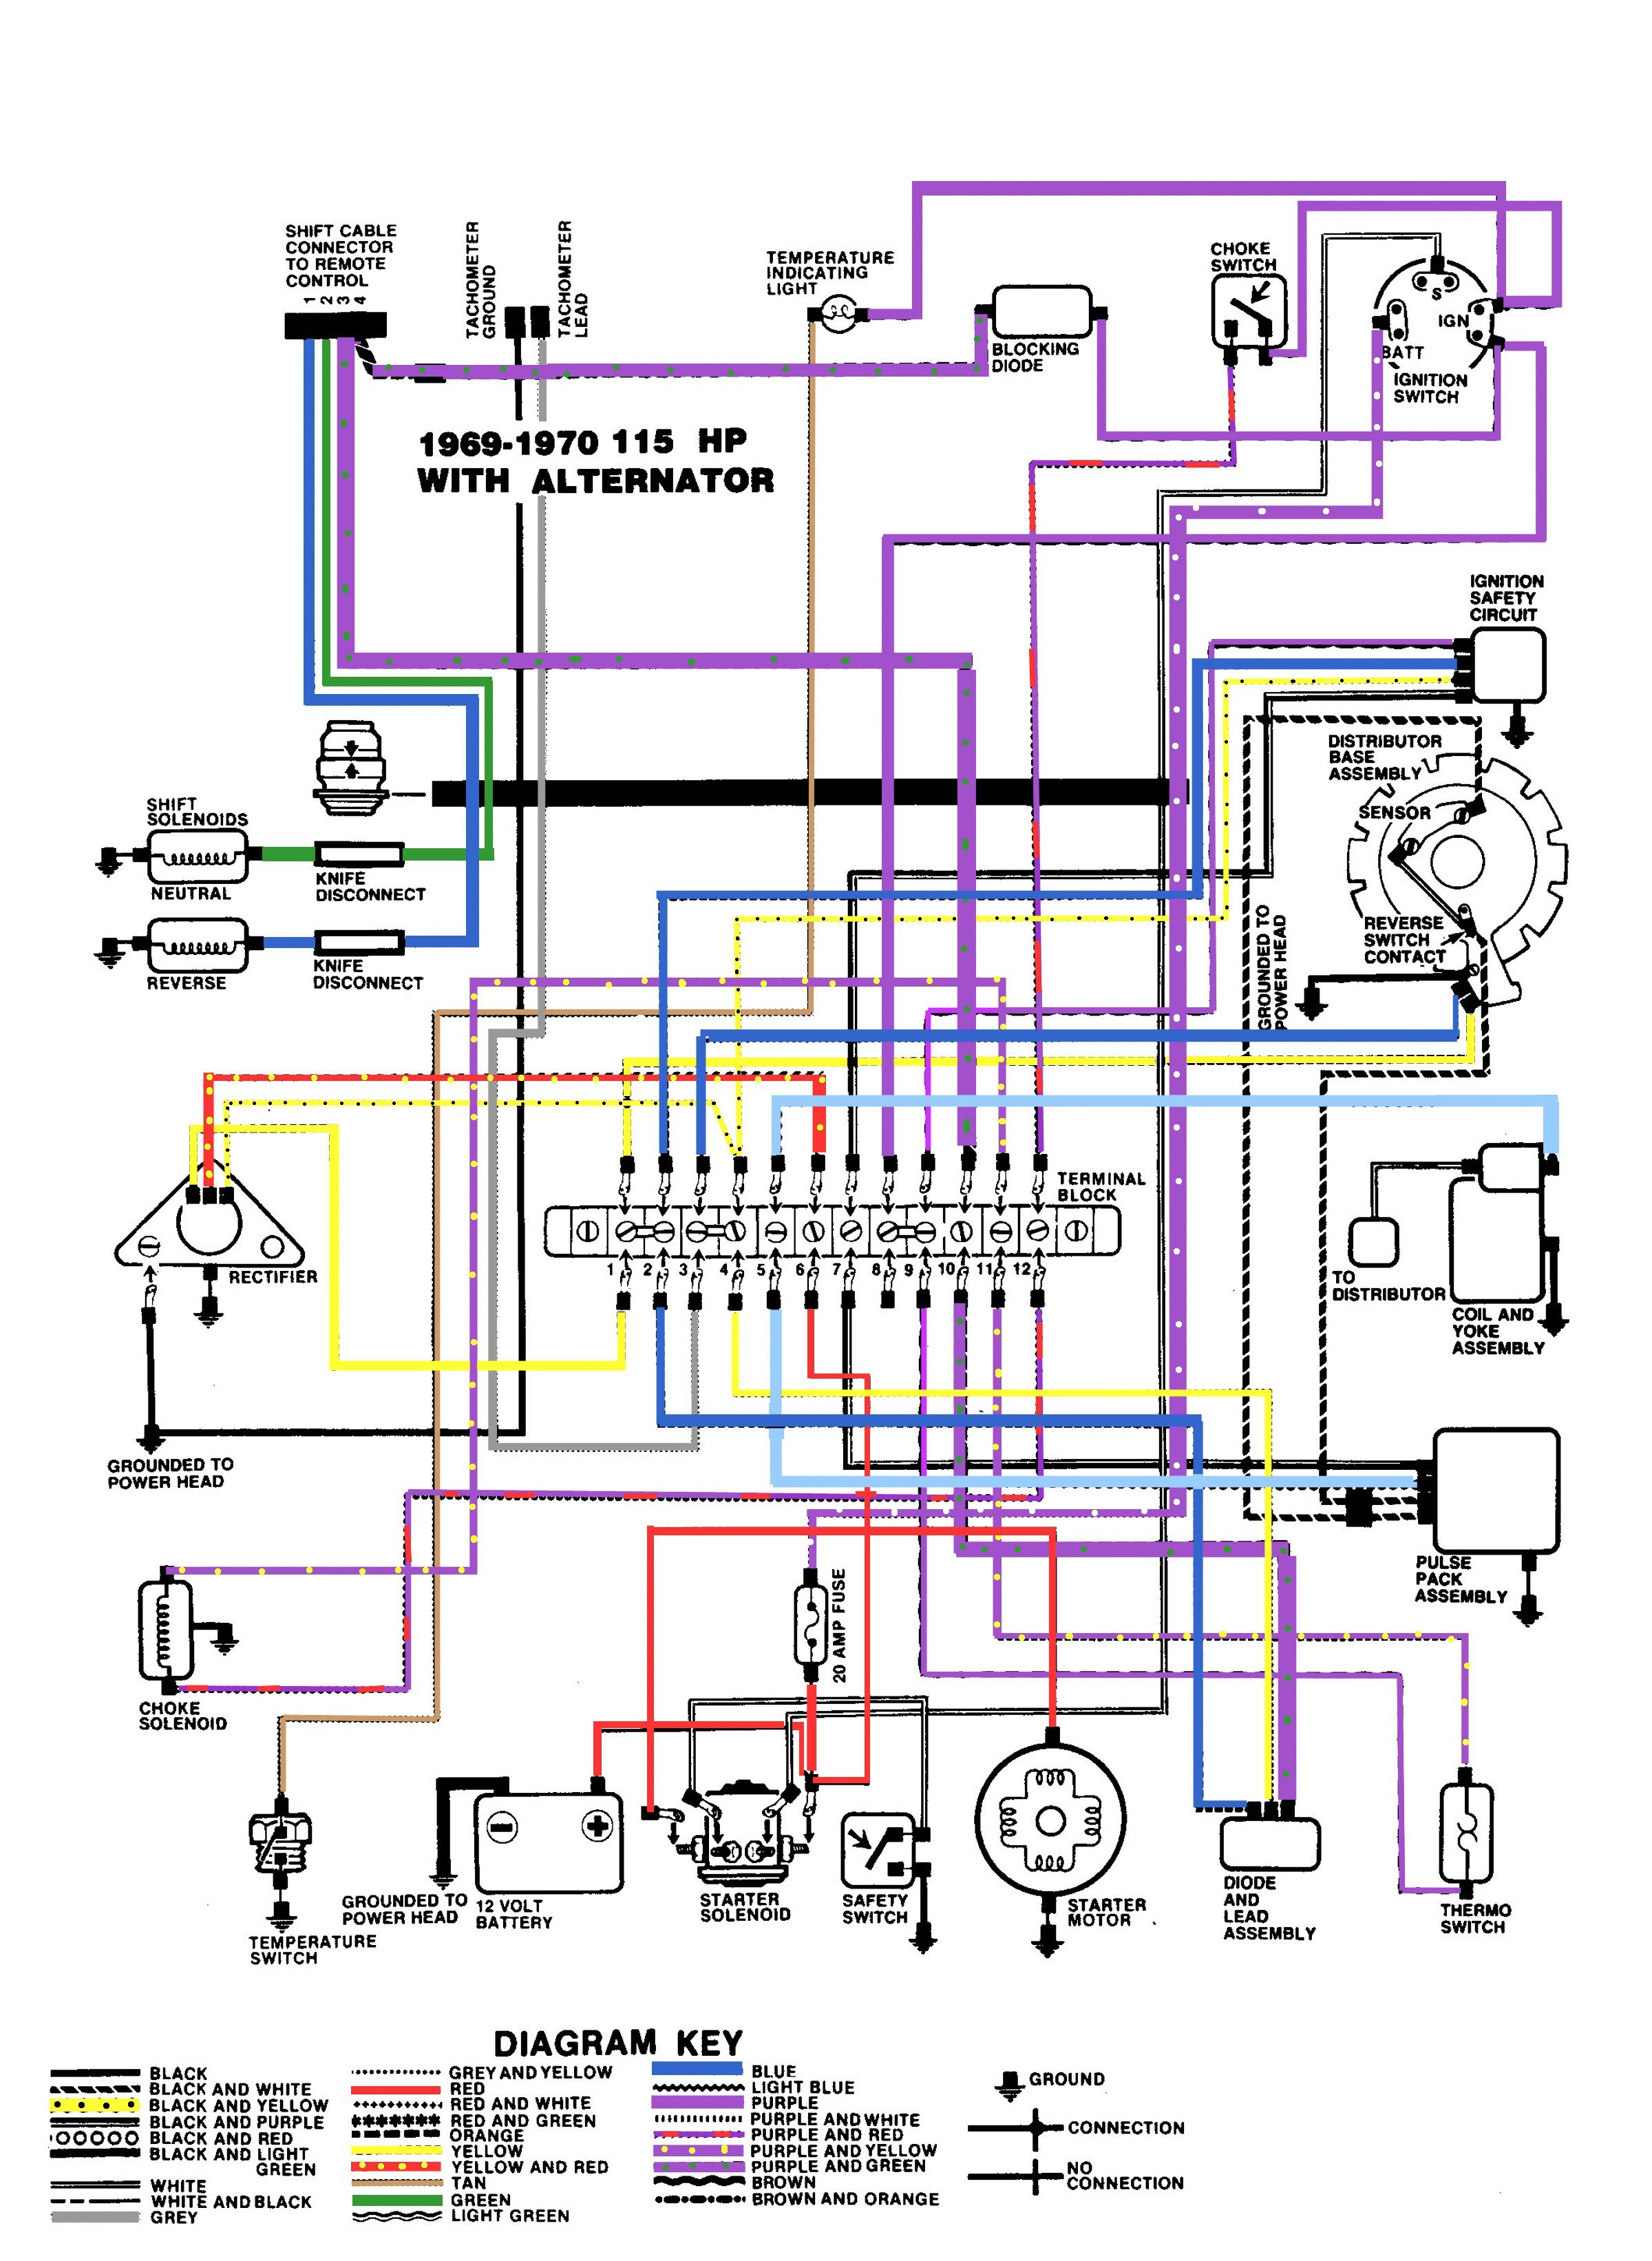 Wiring Diagram For Peavey 215 Speaker Guide And Troubleshooting Of 115h Monitor Library 4 Ohm Guitar Diagrams